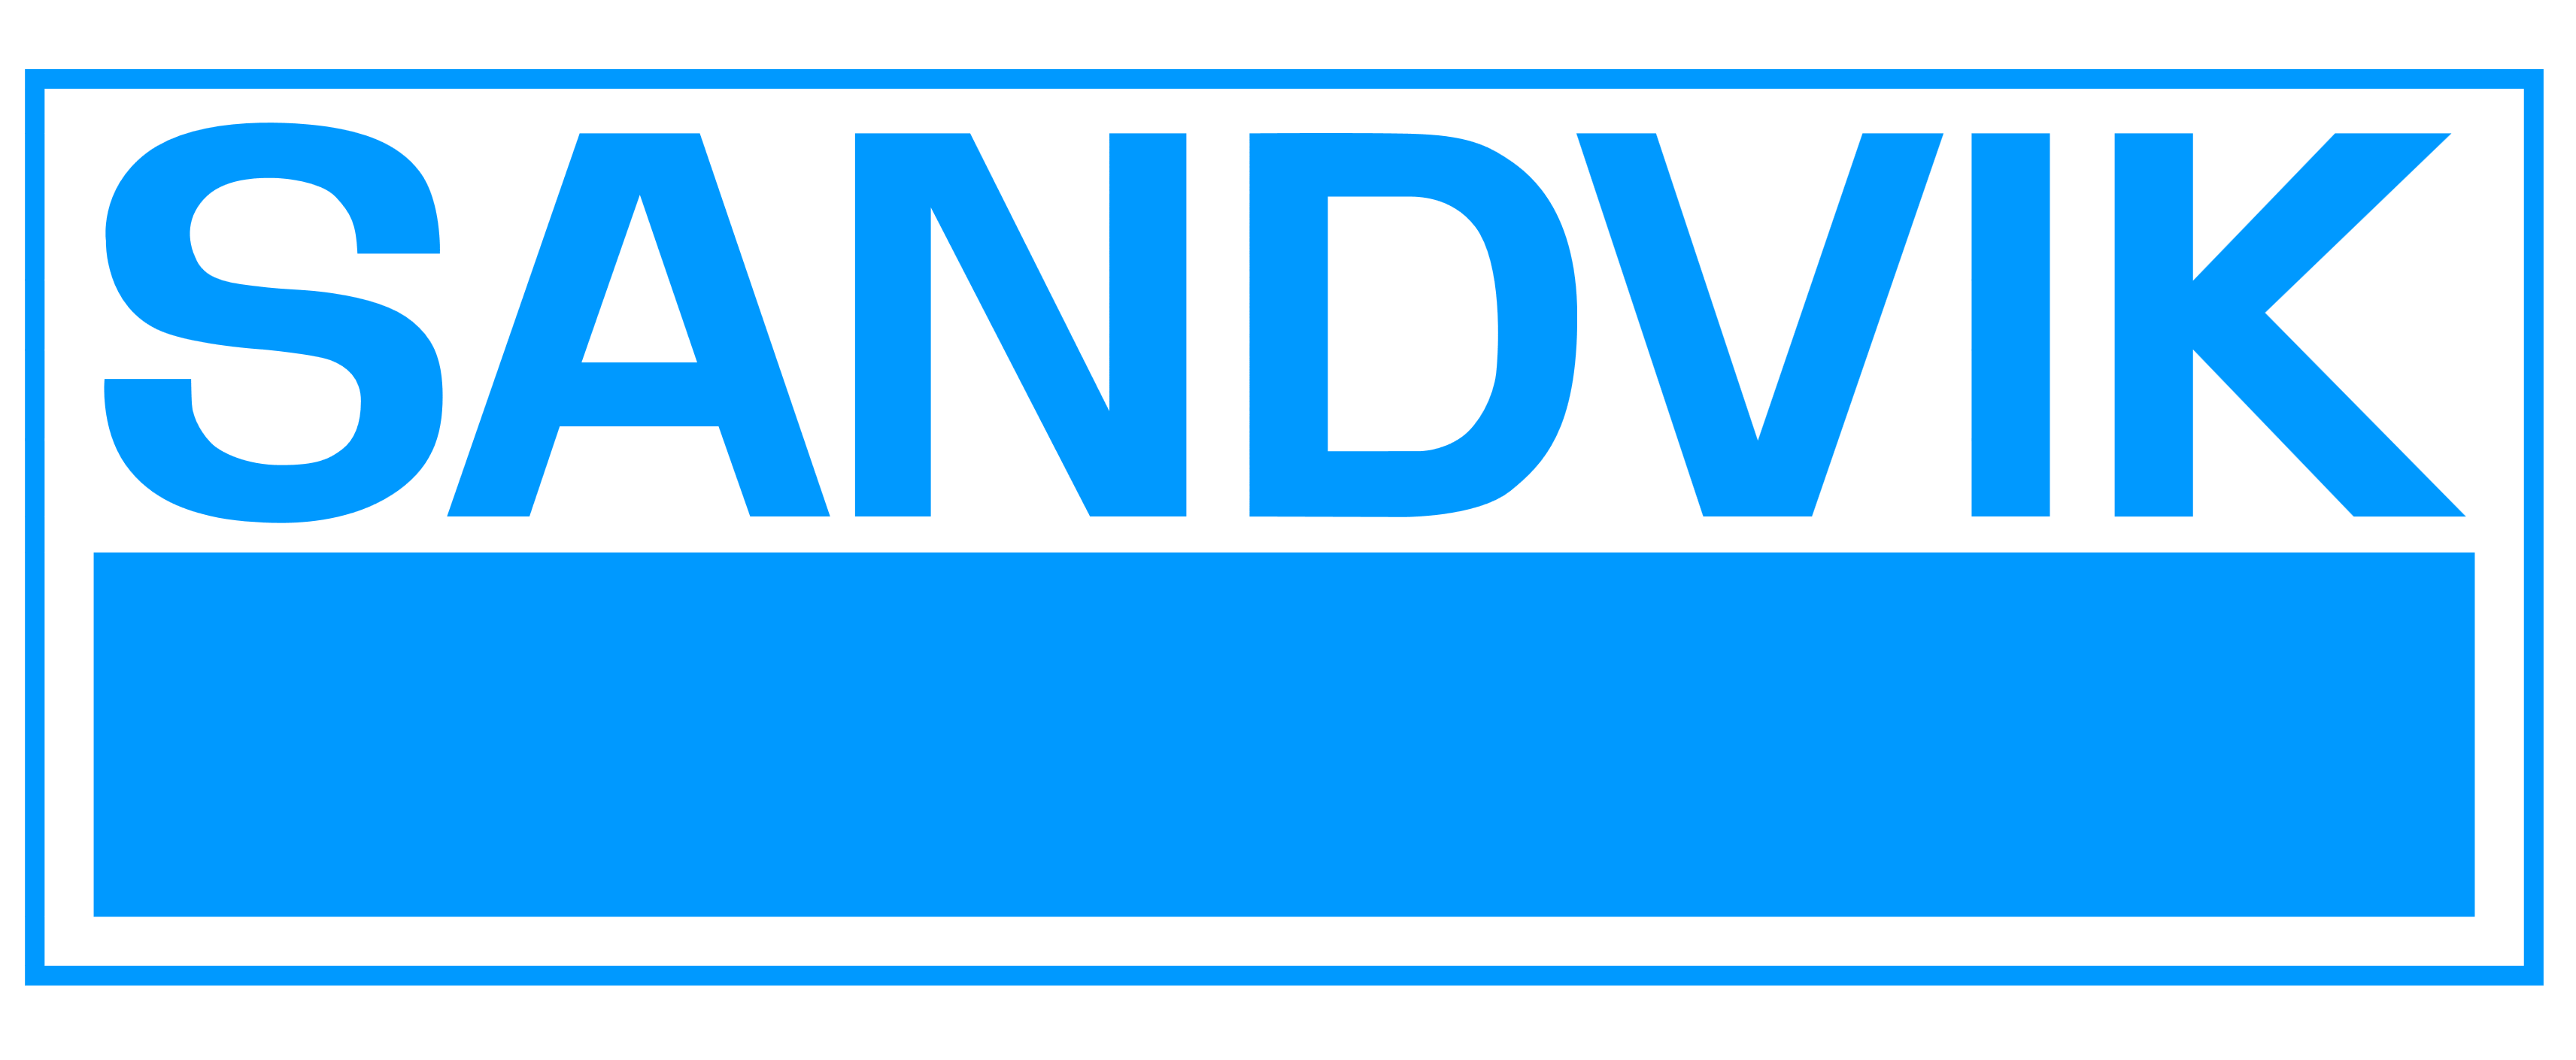 Sandvik three pillar framework